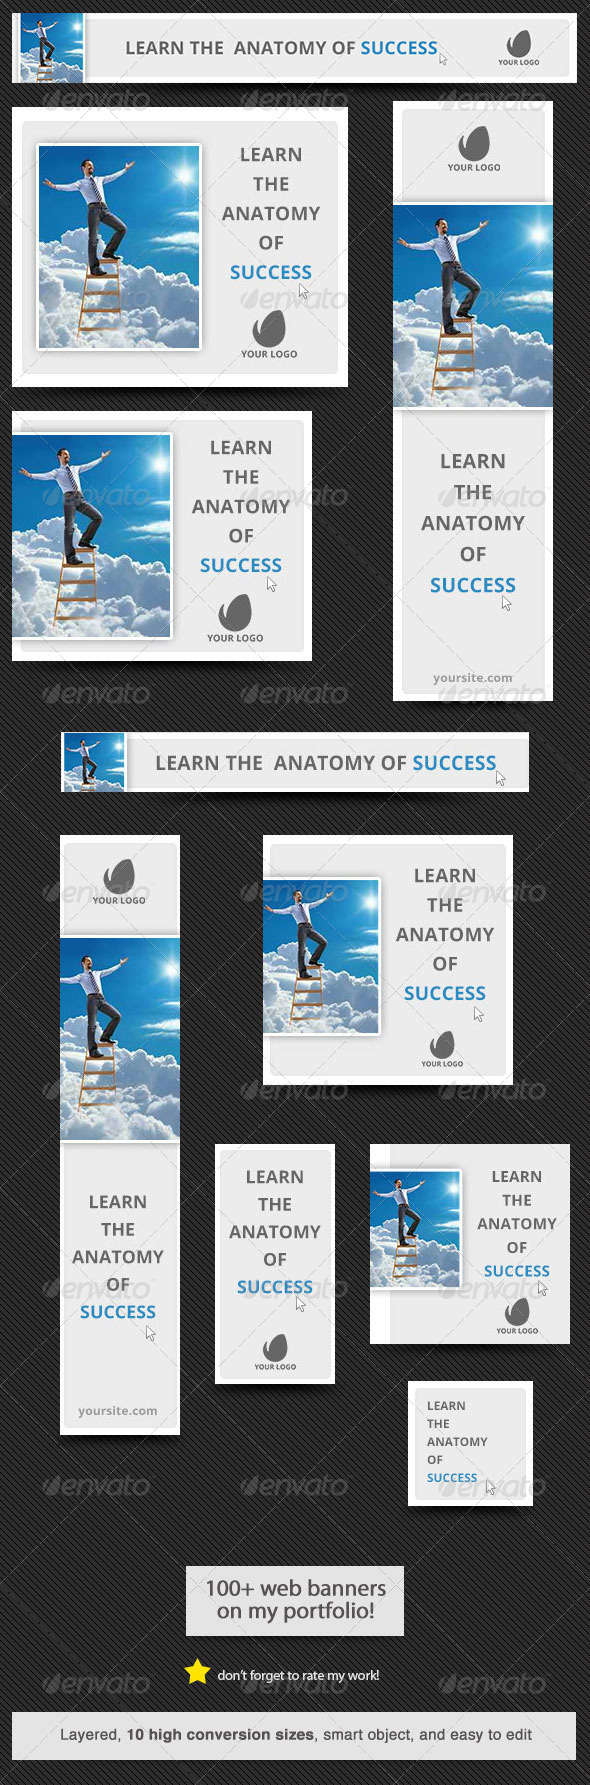 Anatomy of Success Web Banner - Banners & Ads Web Elements